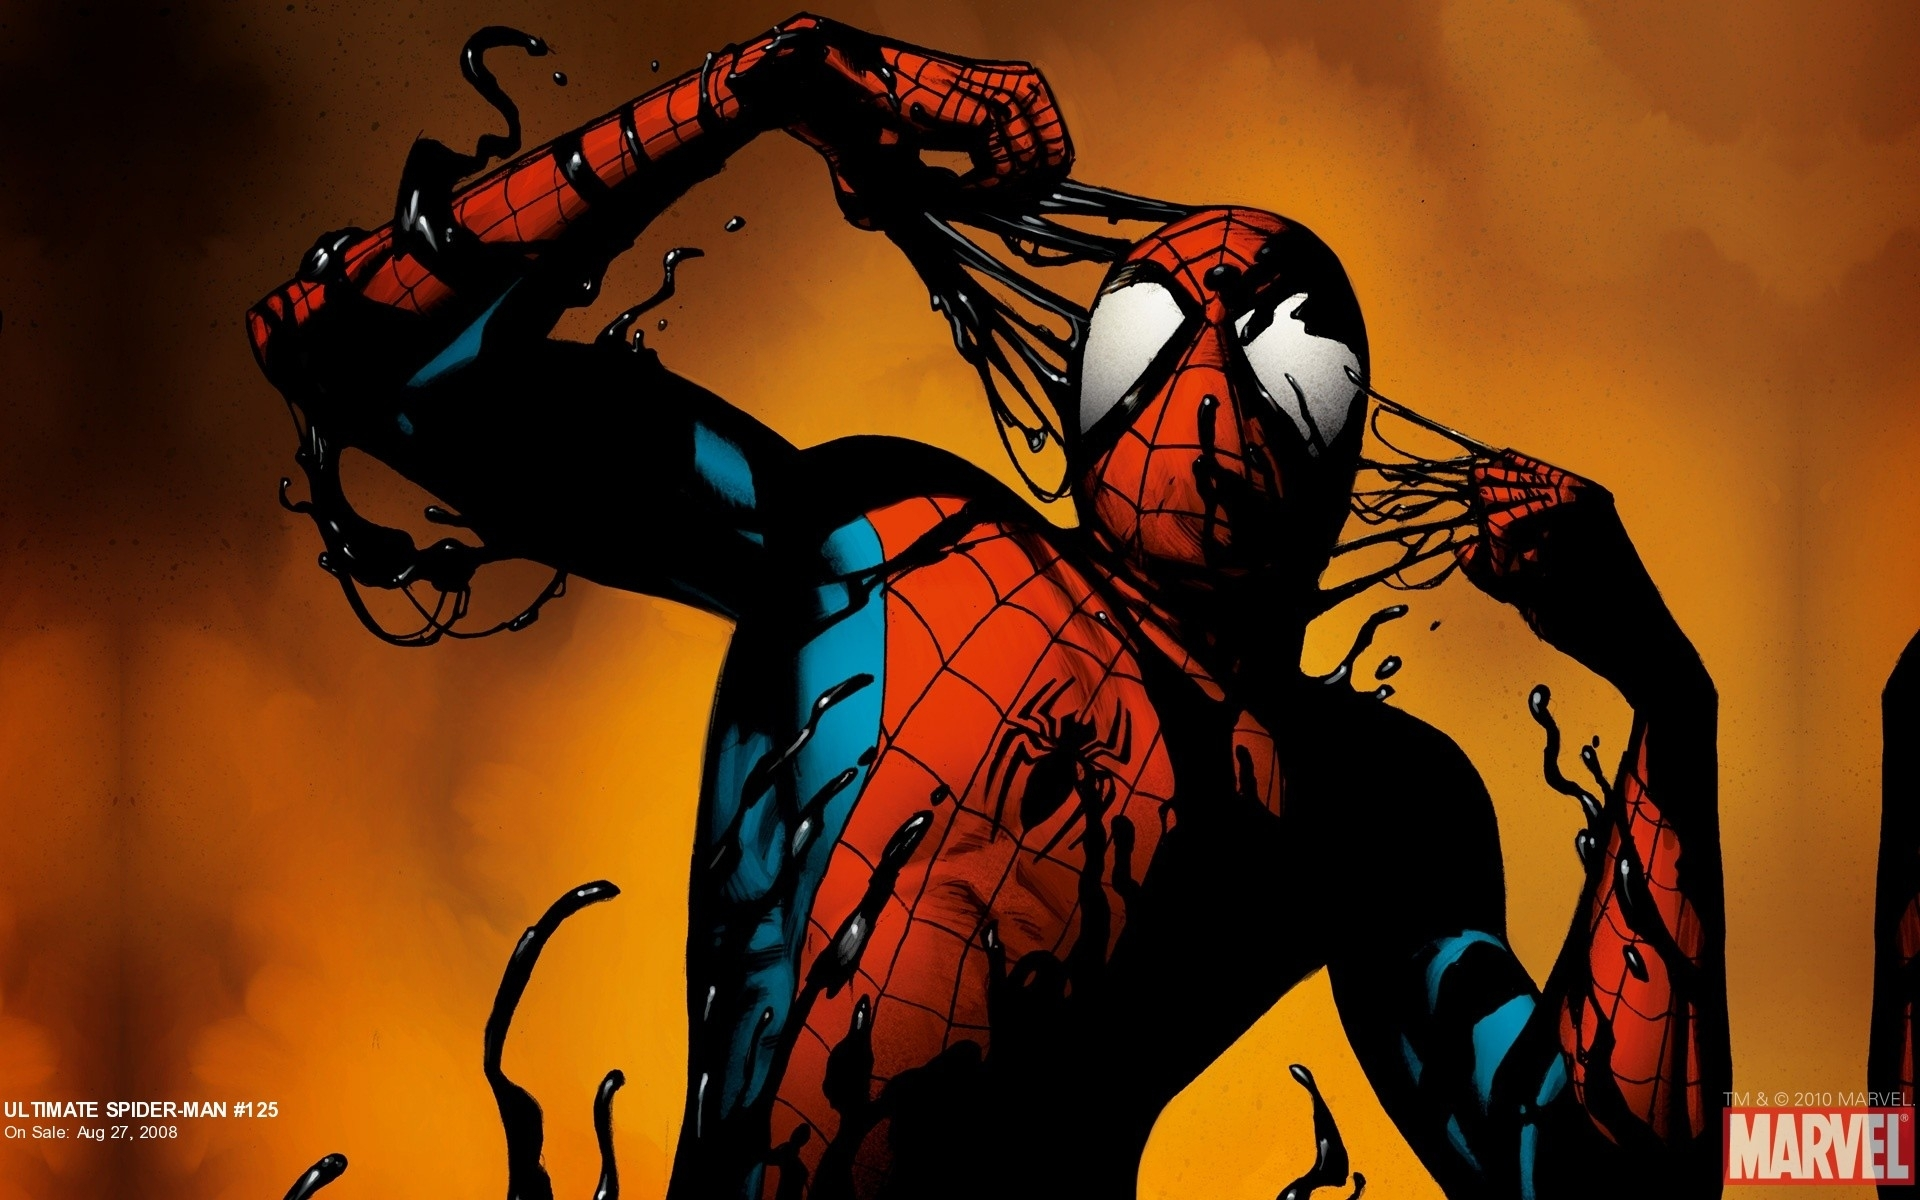 10 Best Spider Man 2099 Wallpaper Hd Full Hd 1920 1080 For: 10 Top Ultimate Spider Man Comic Wallpaper FULL HD 1920